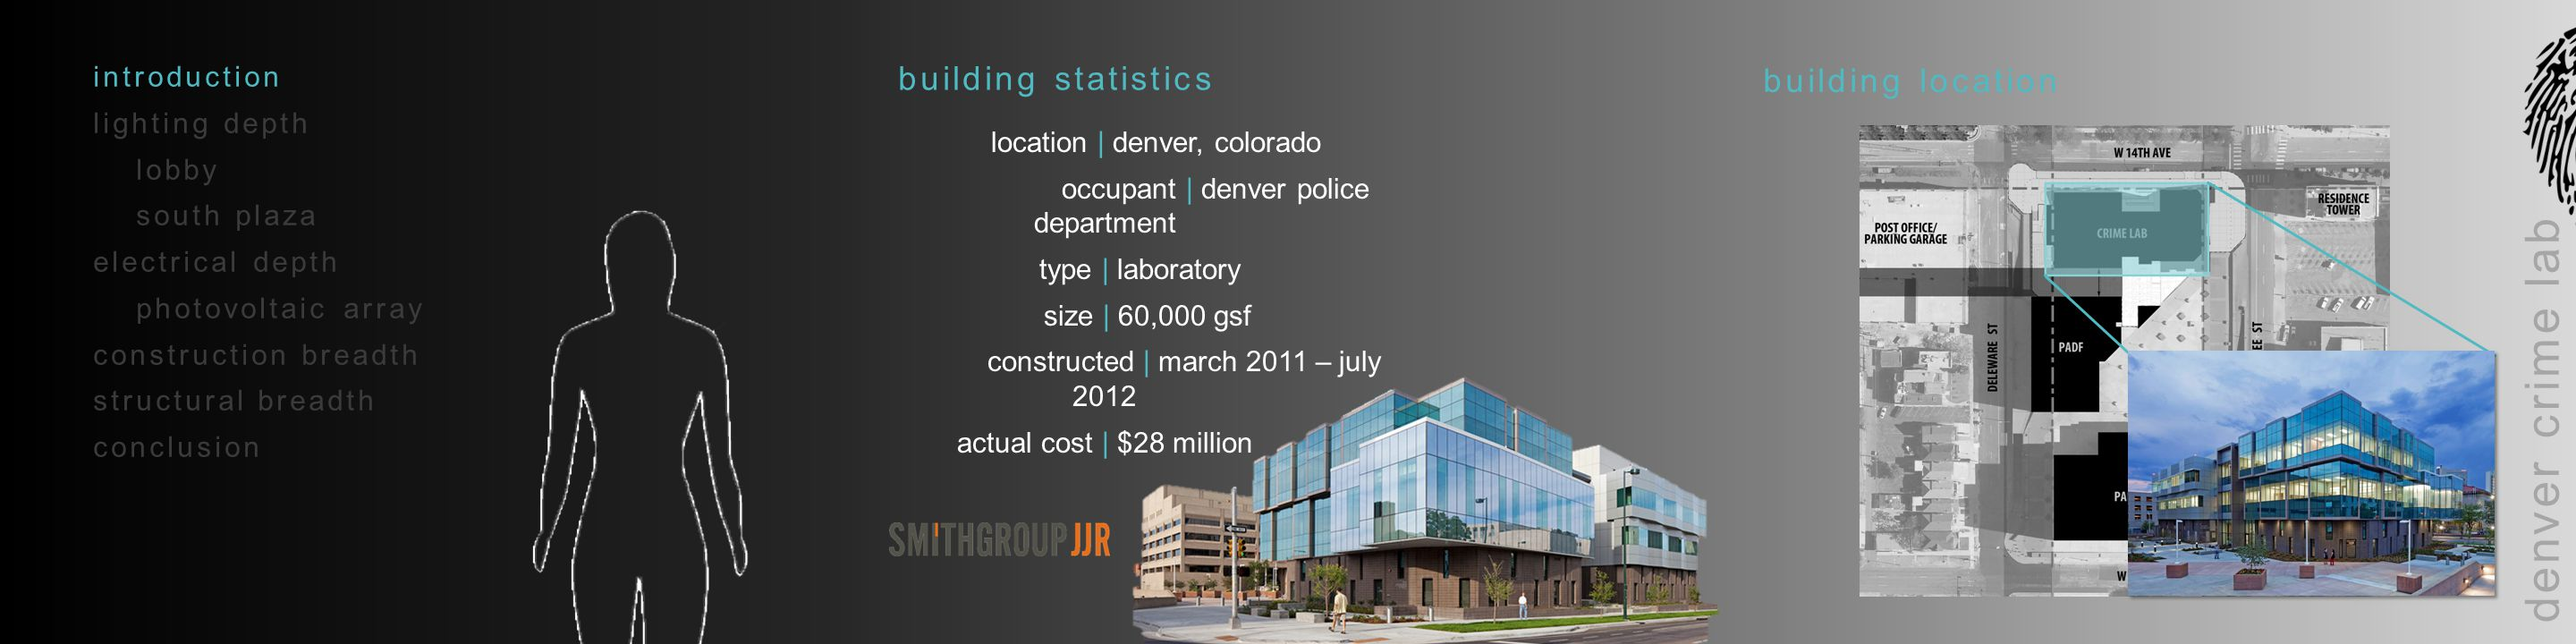 denver crime lab introduction lighting depth lobby south plaza electrical depth photovoltaic array construction breadth structural breadth conclusion